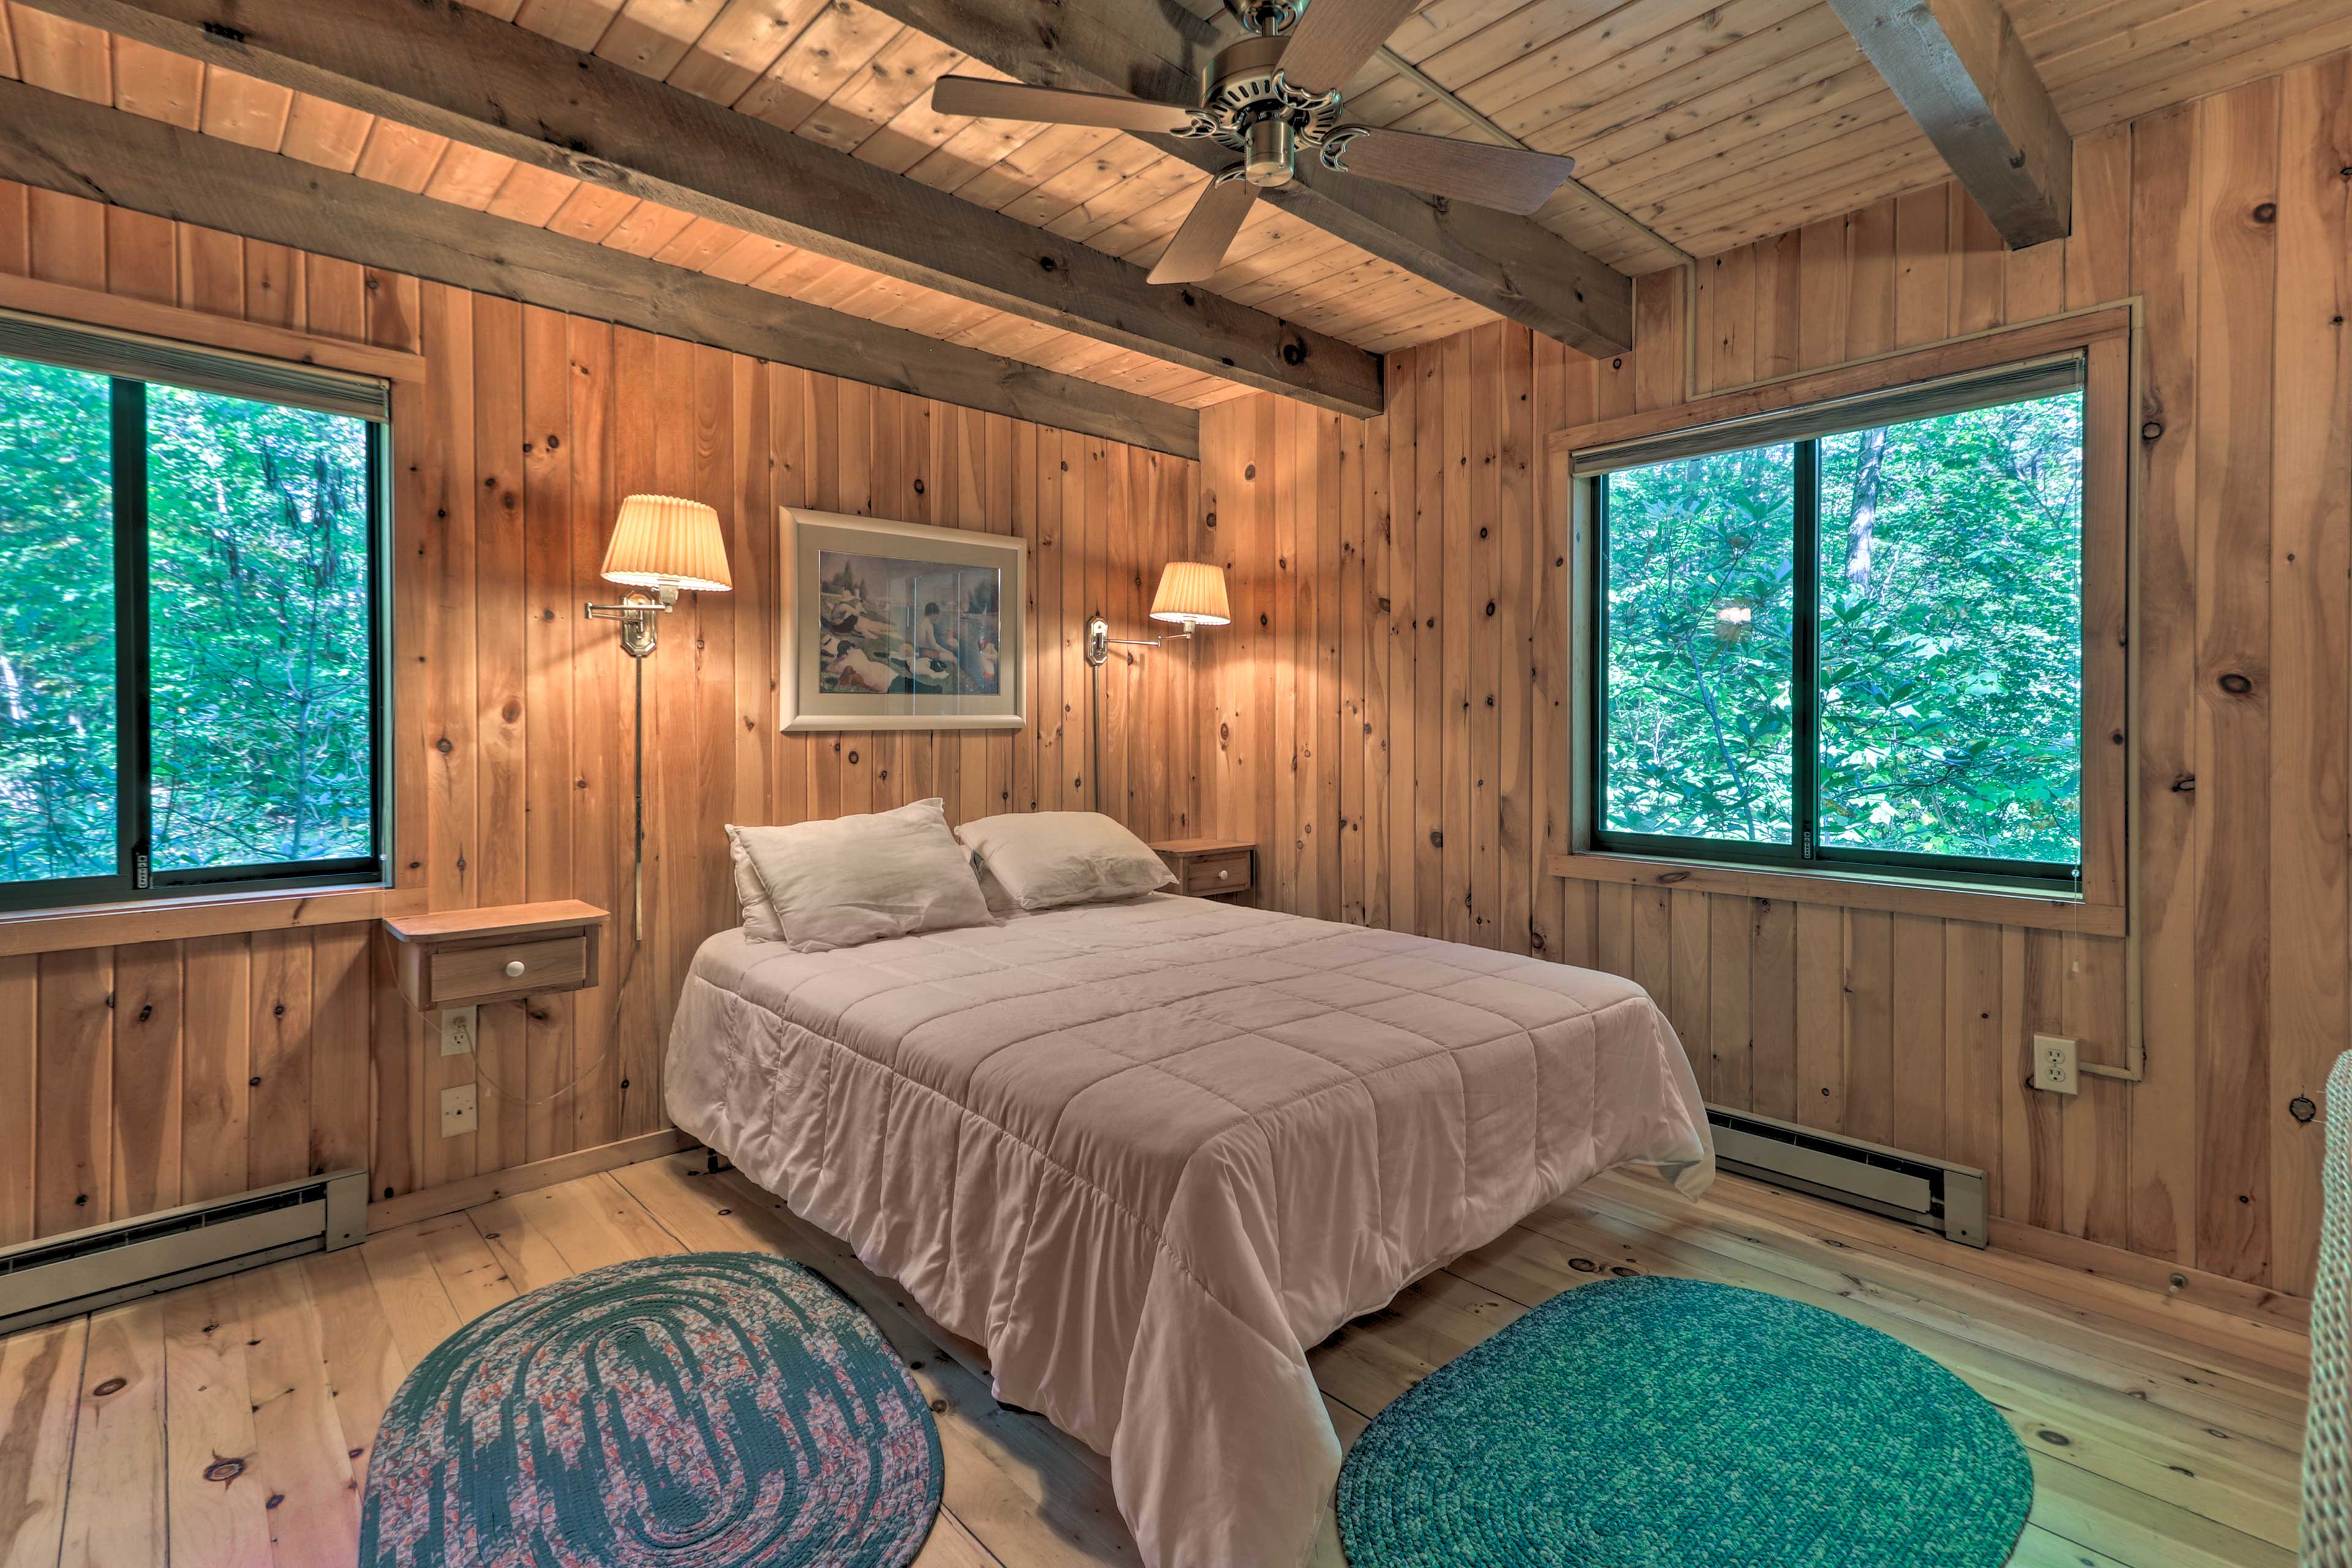 The second bedroom features a queen bed as well.